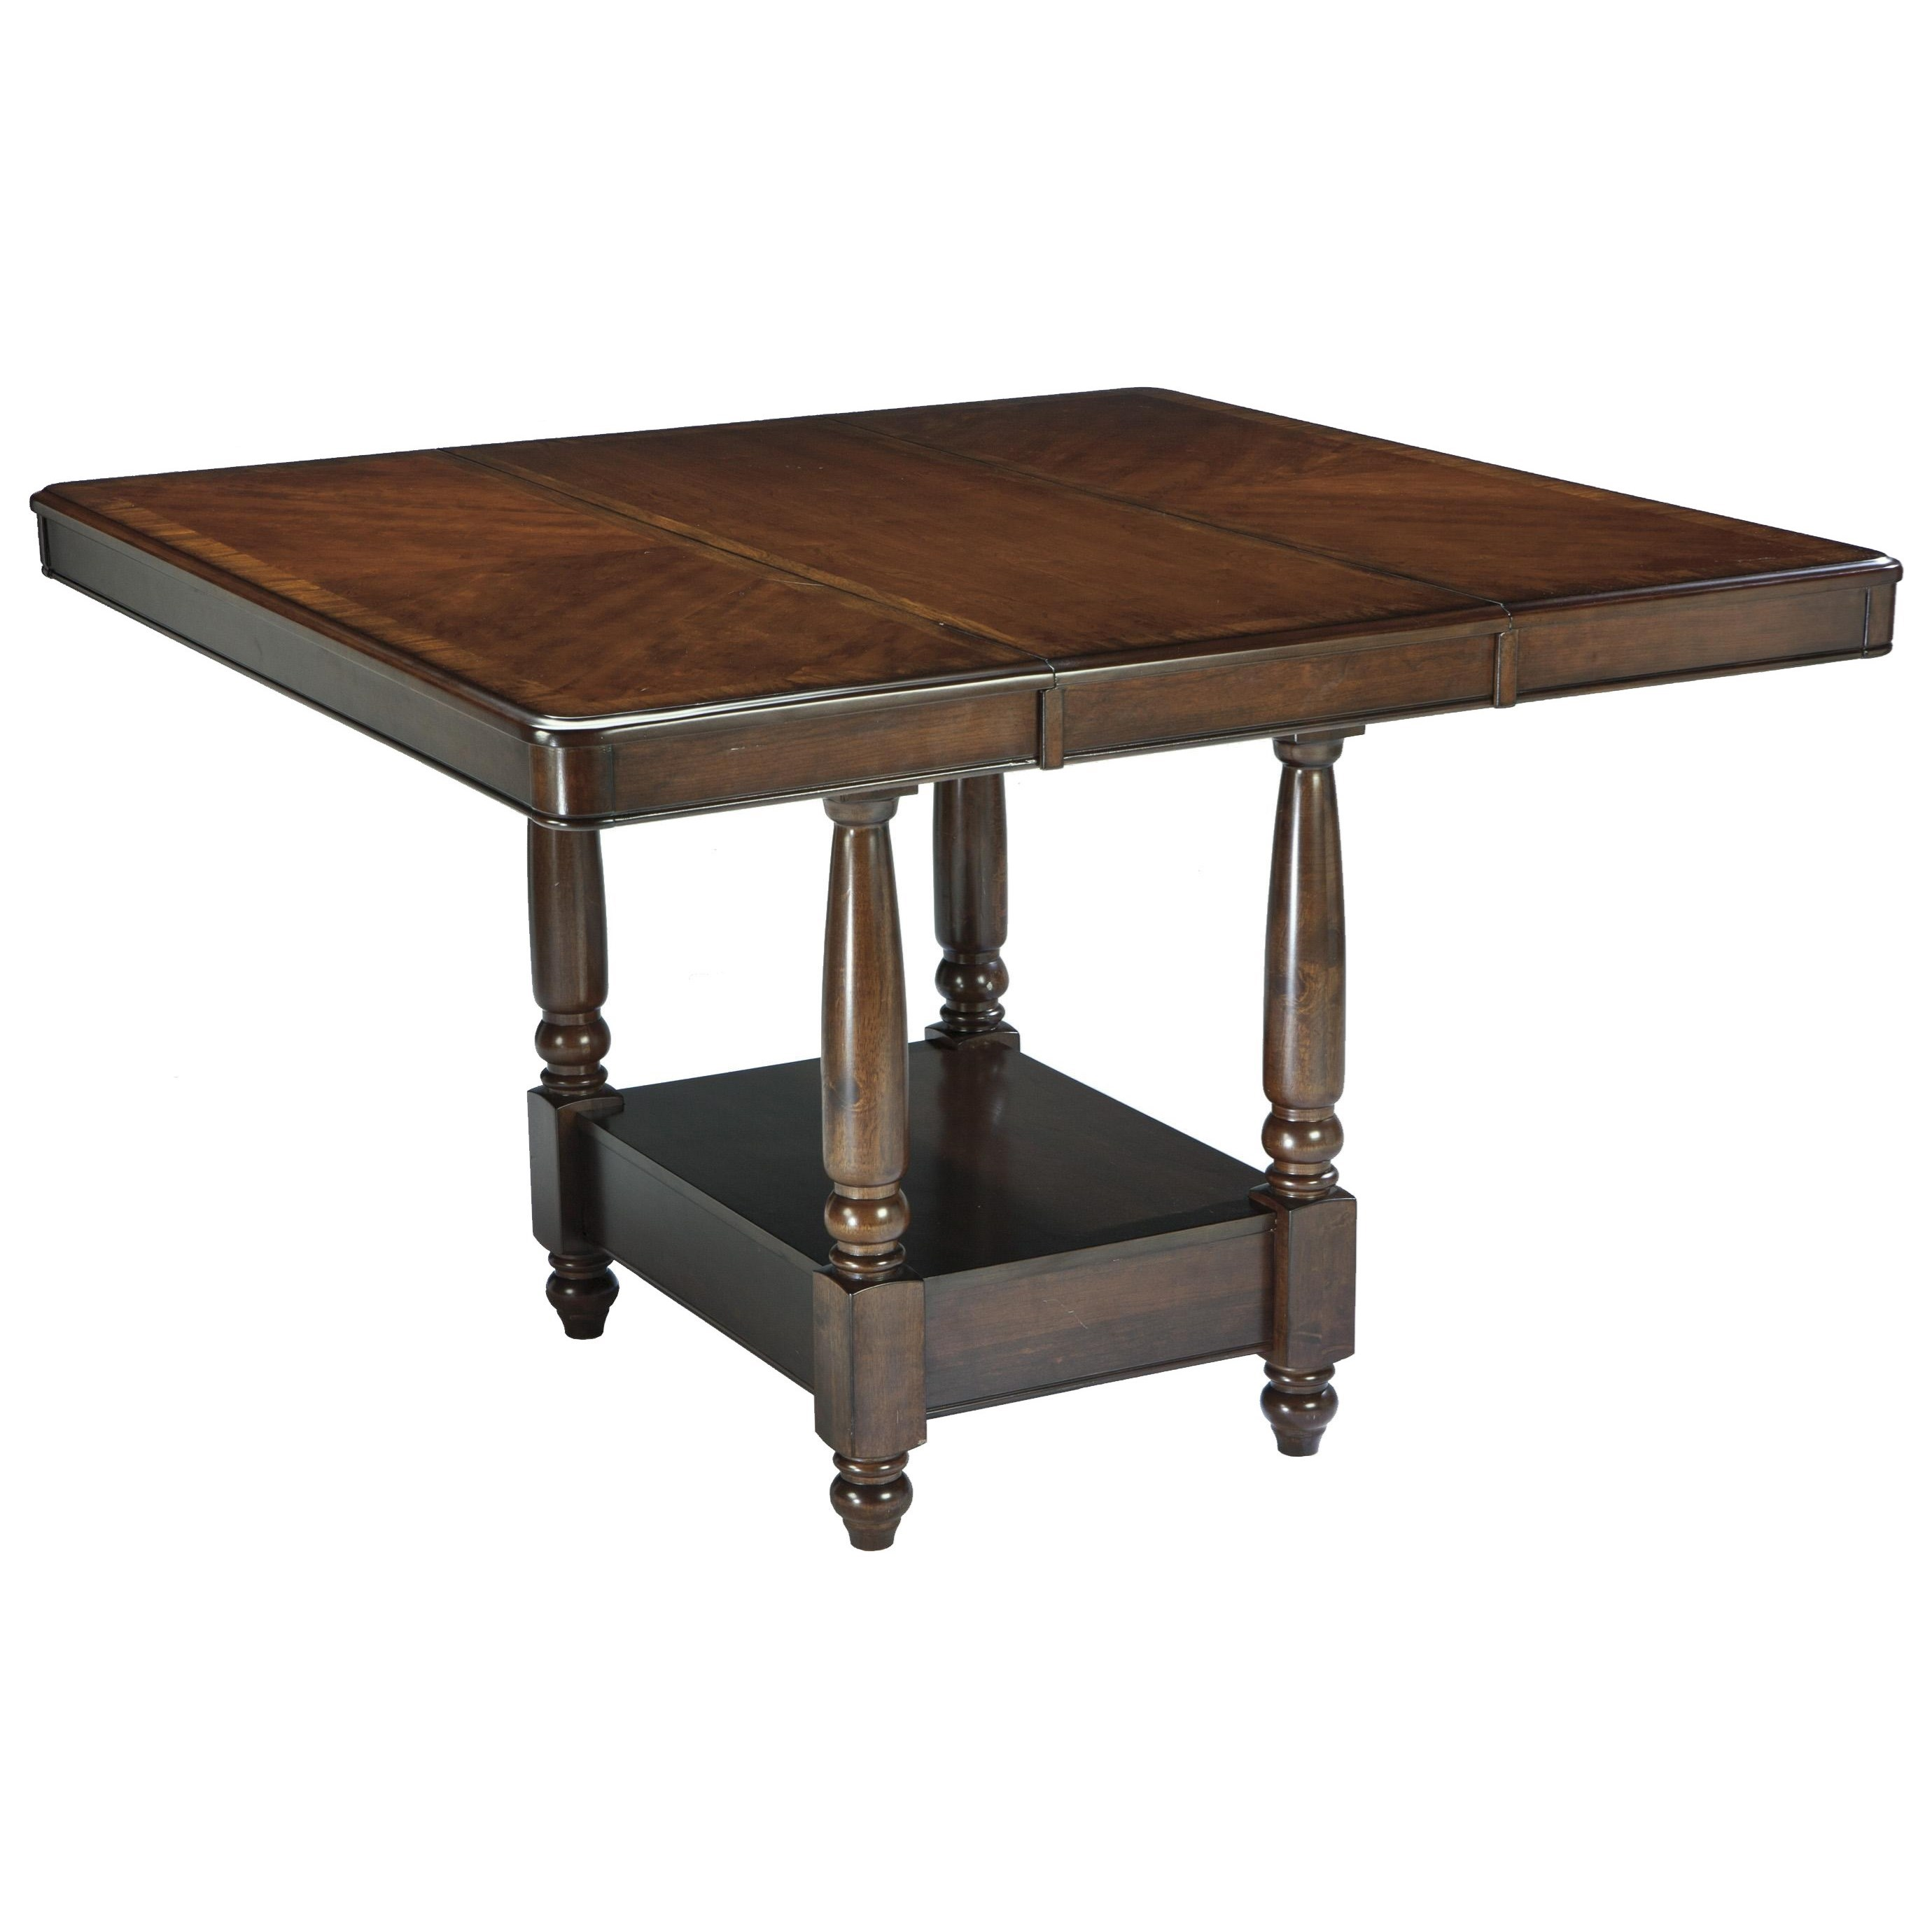 Dining room counter extension table with bordered veneer Table extenders dining room